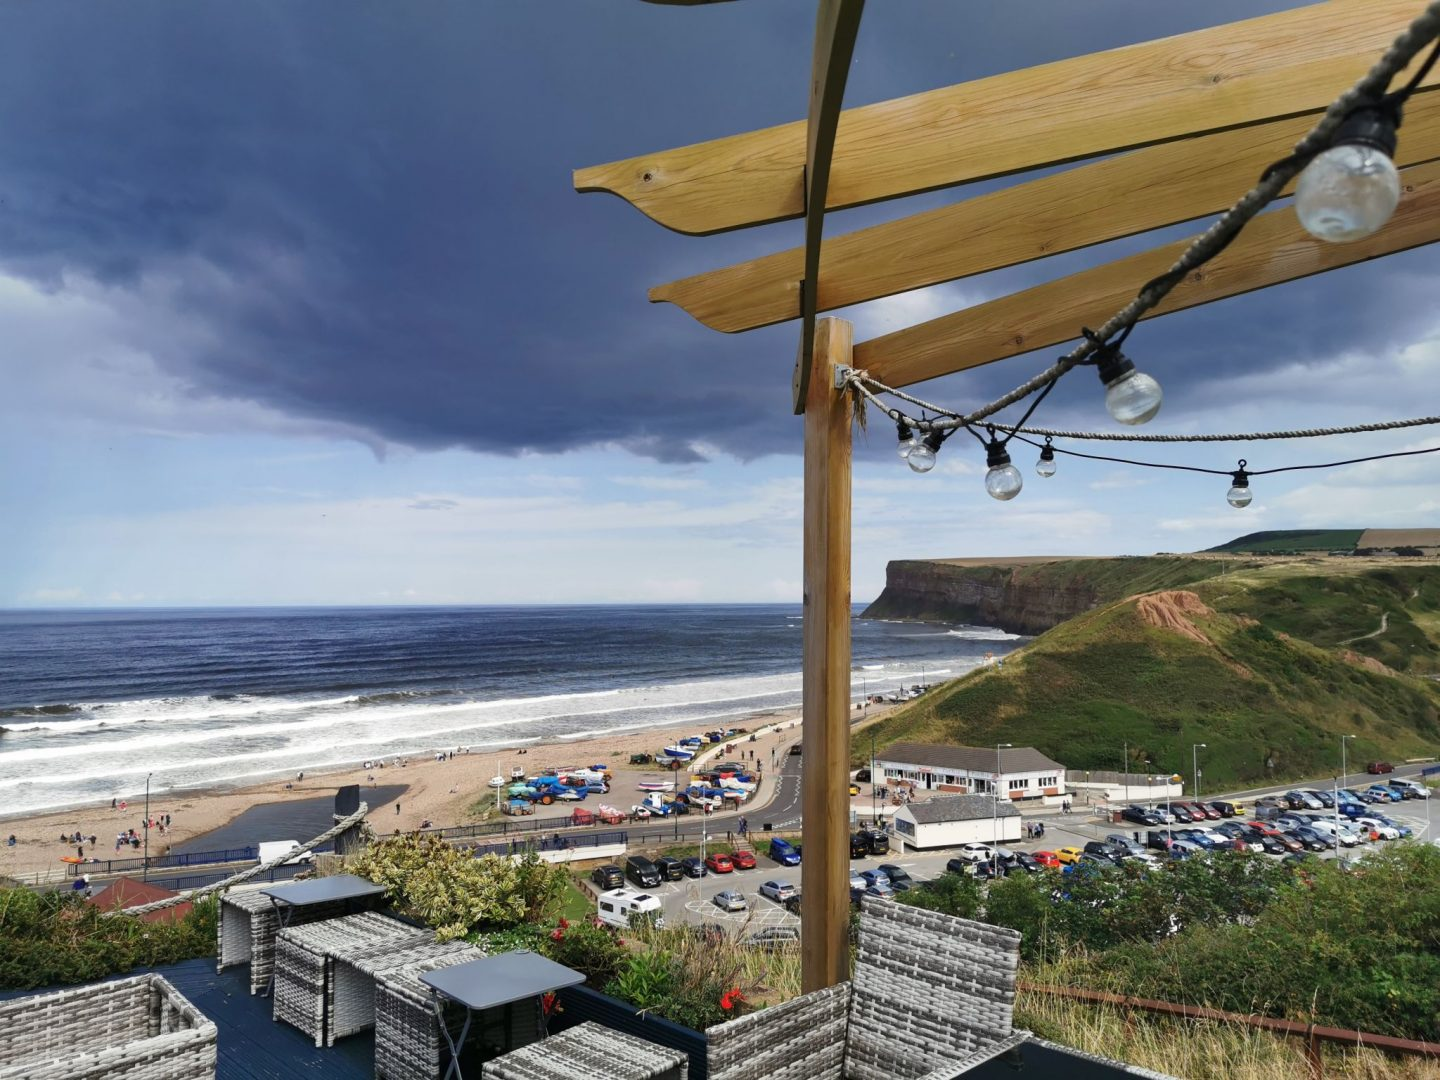 Lunch with a view at The Spa Hotel in Saltburn (Ad)